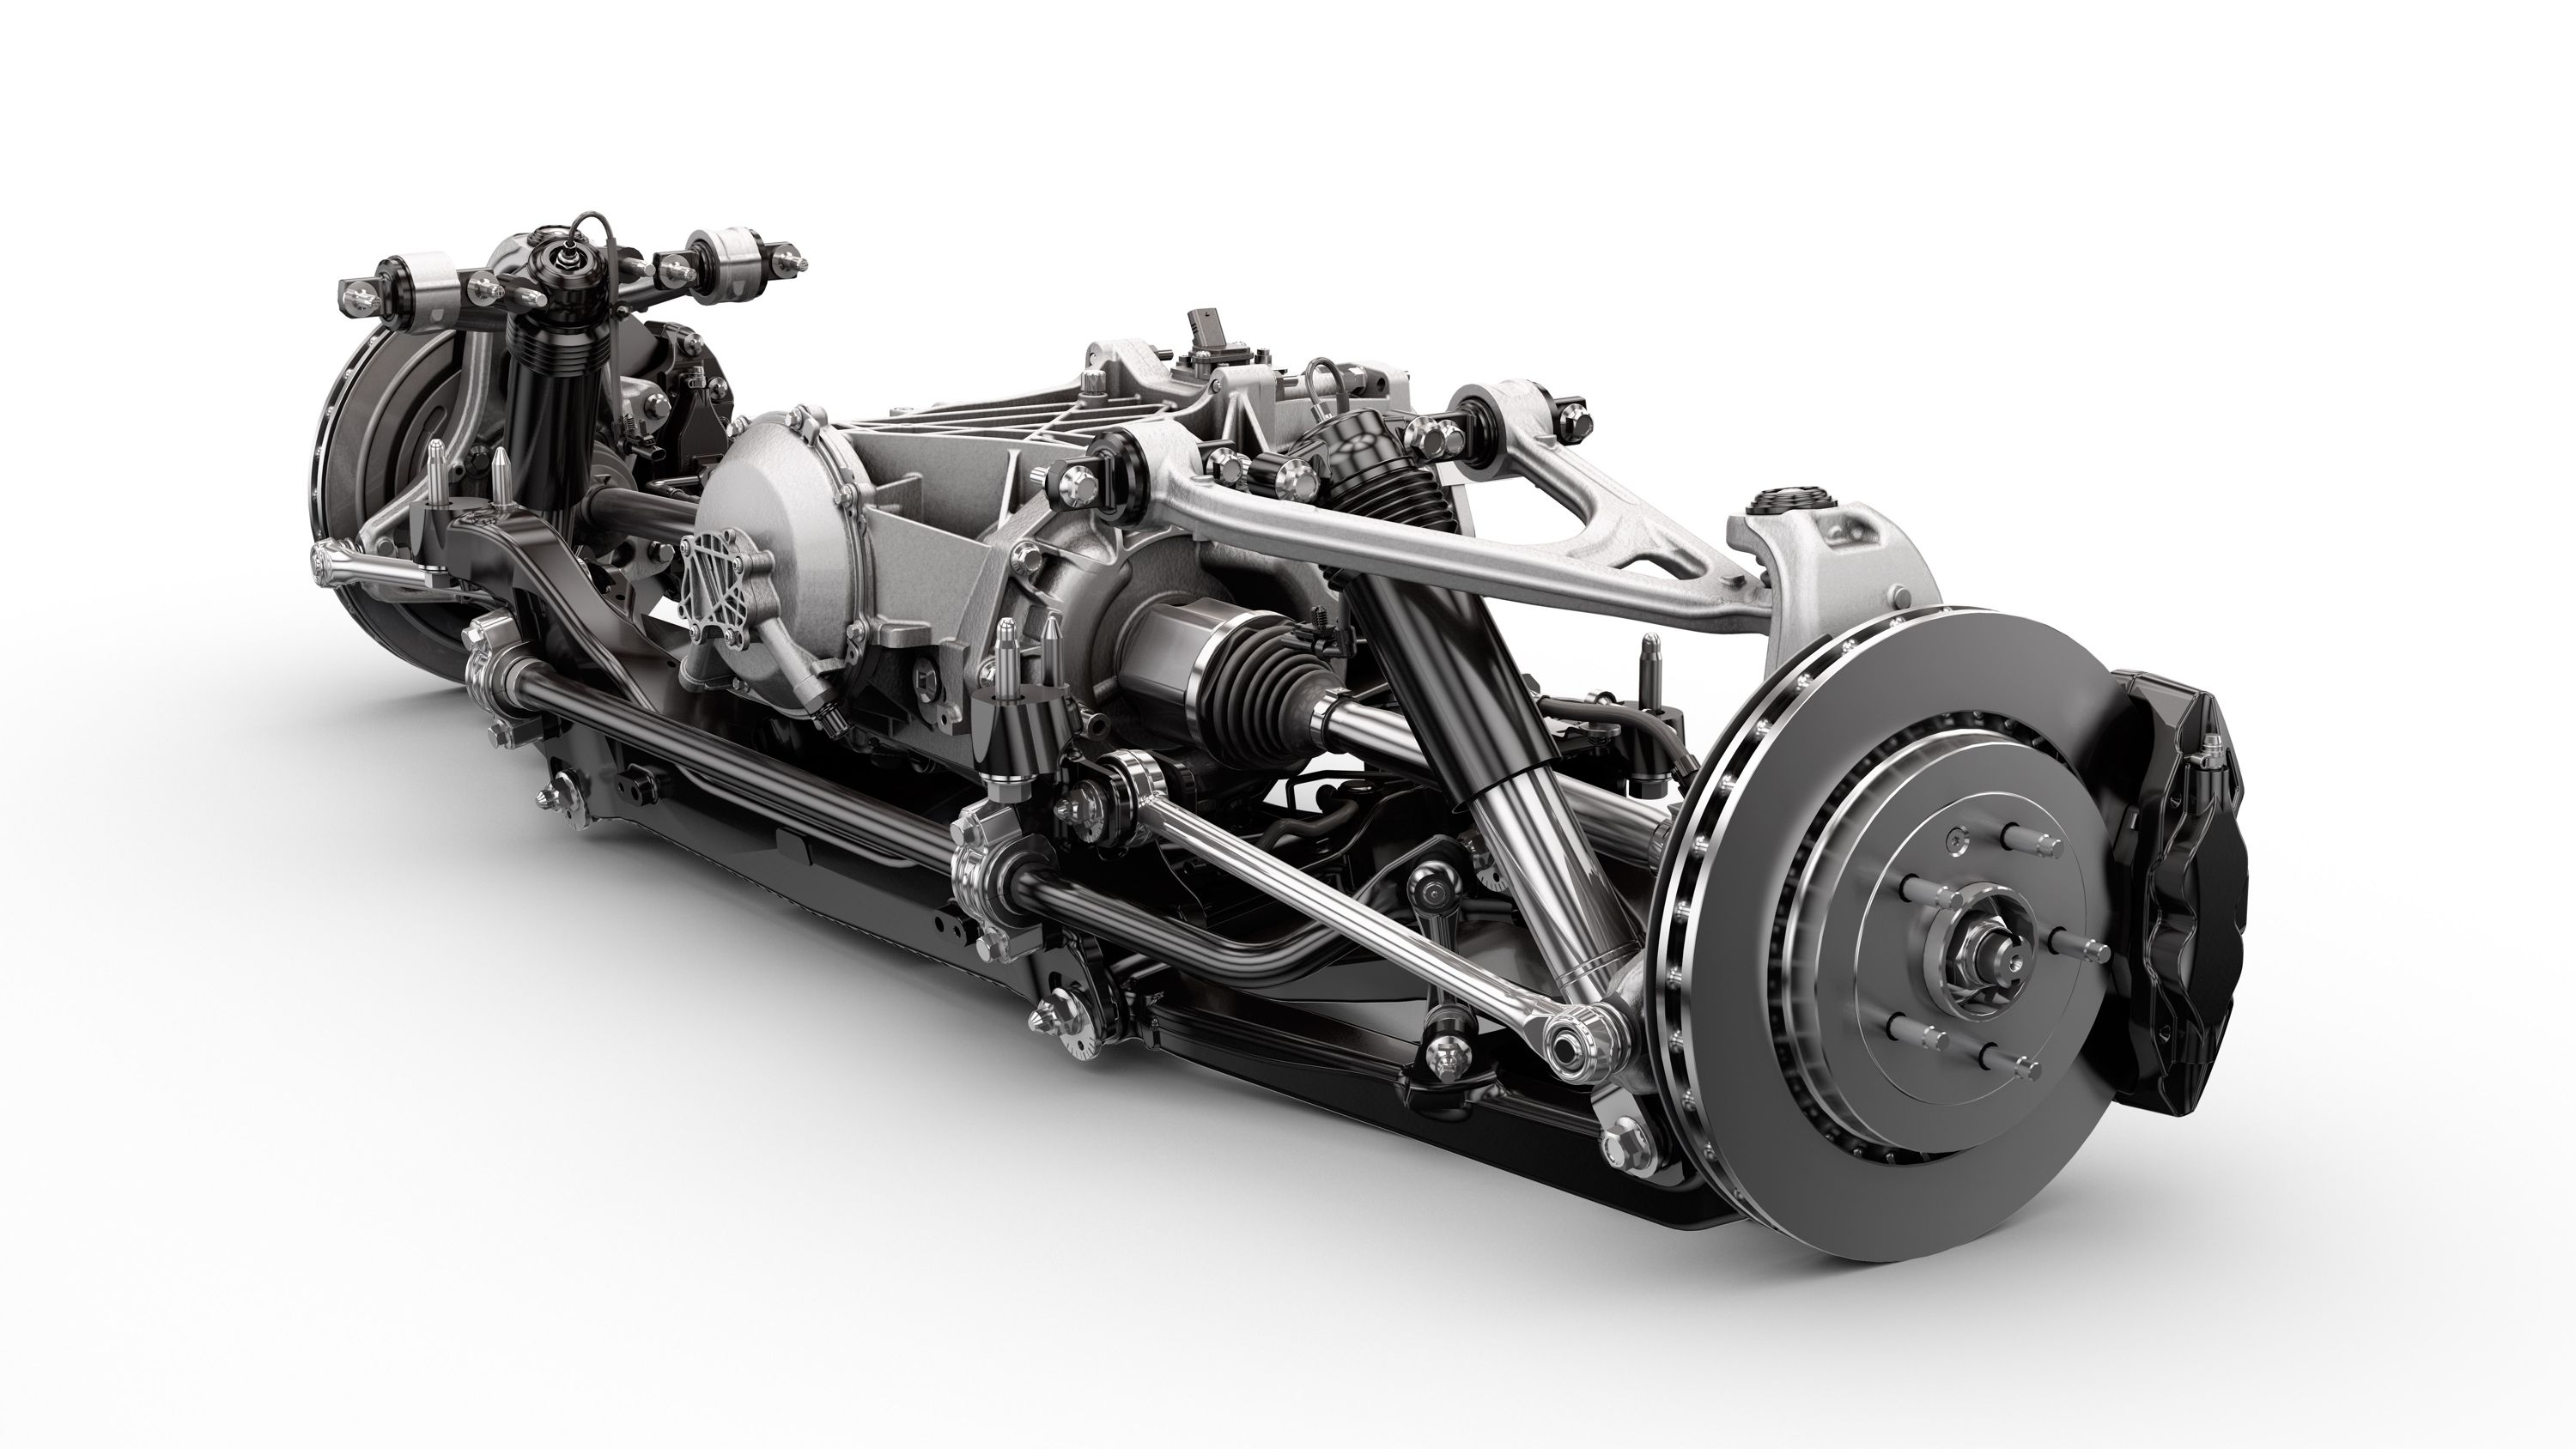 Corvette Jpeg Crop Xw on Ford 5 4 Exploded View Of Engine